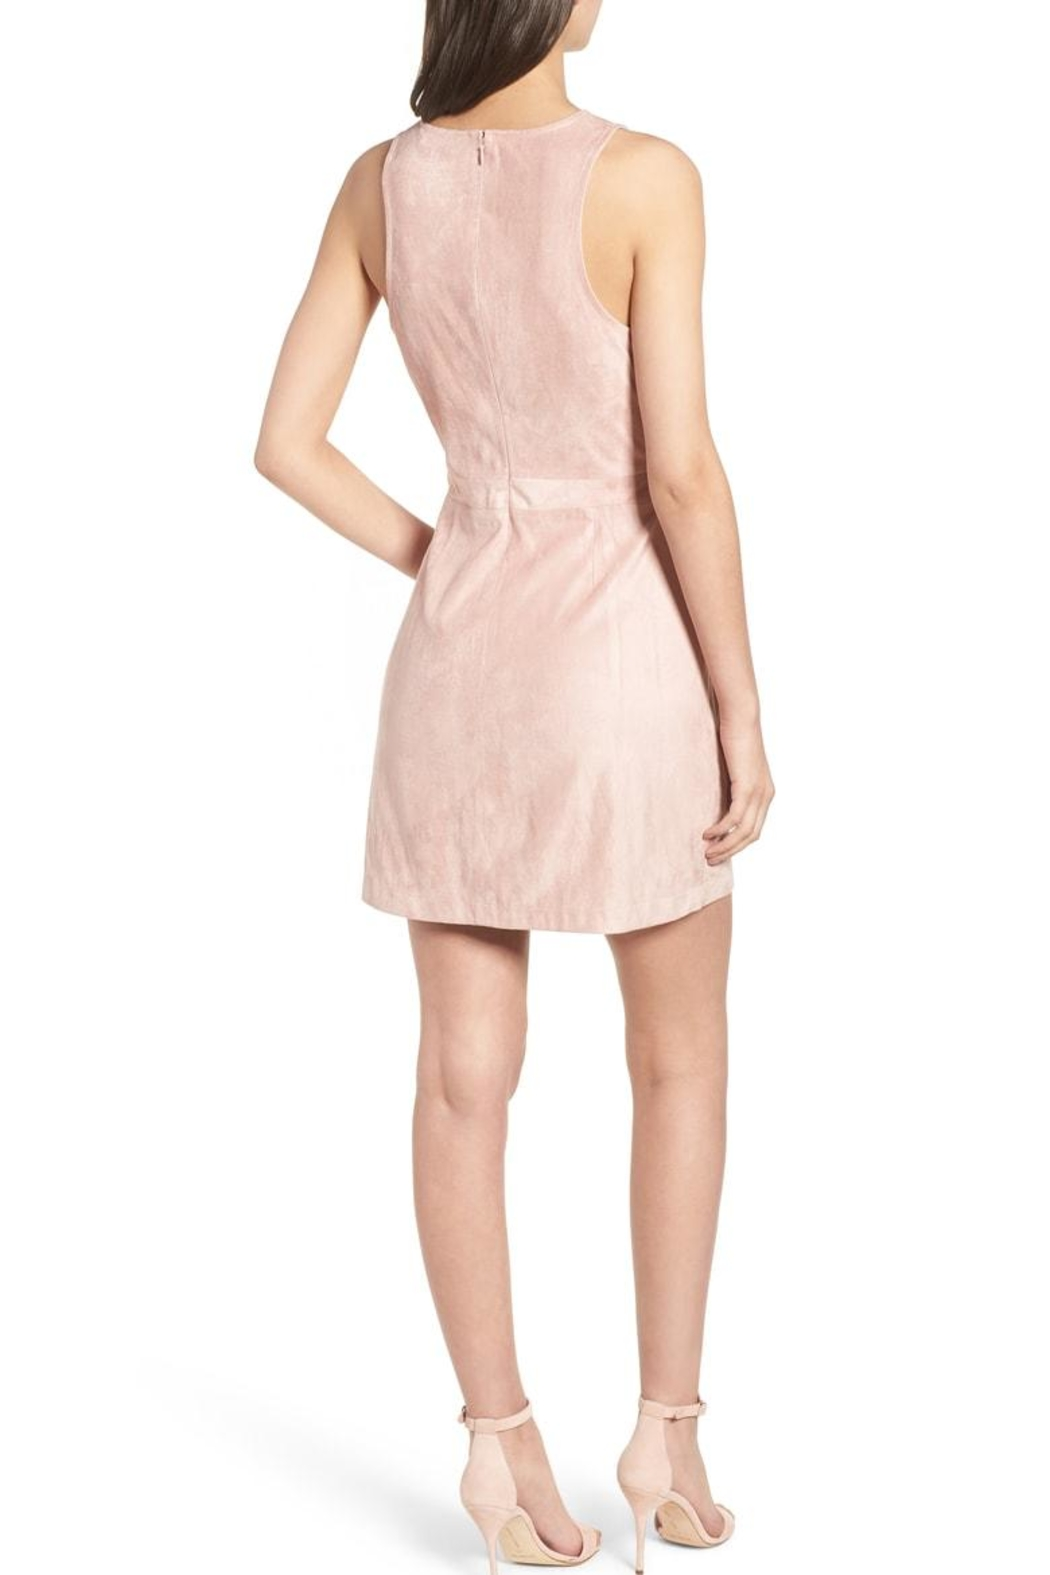 Cupcakes and Cashmere Daton Suede Dress - Front Full Image